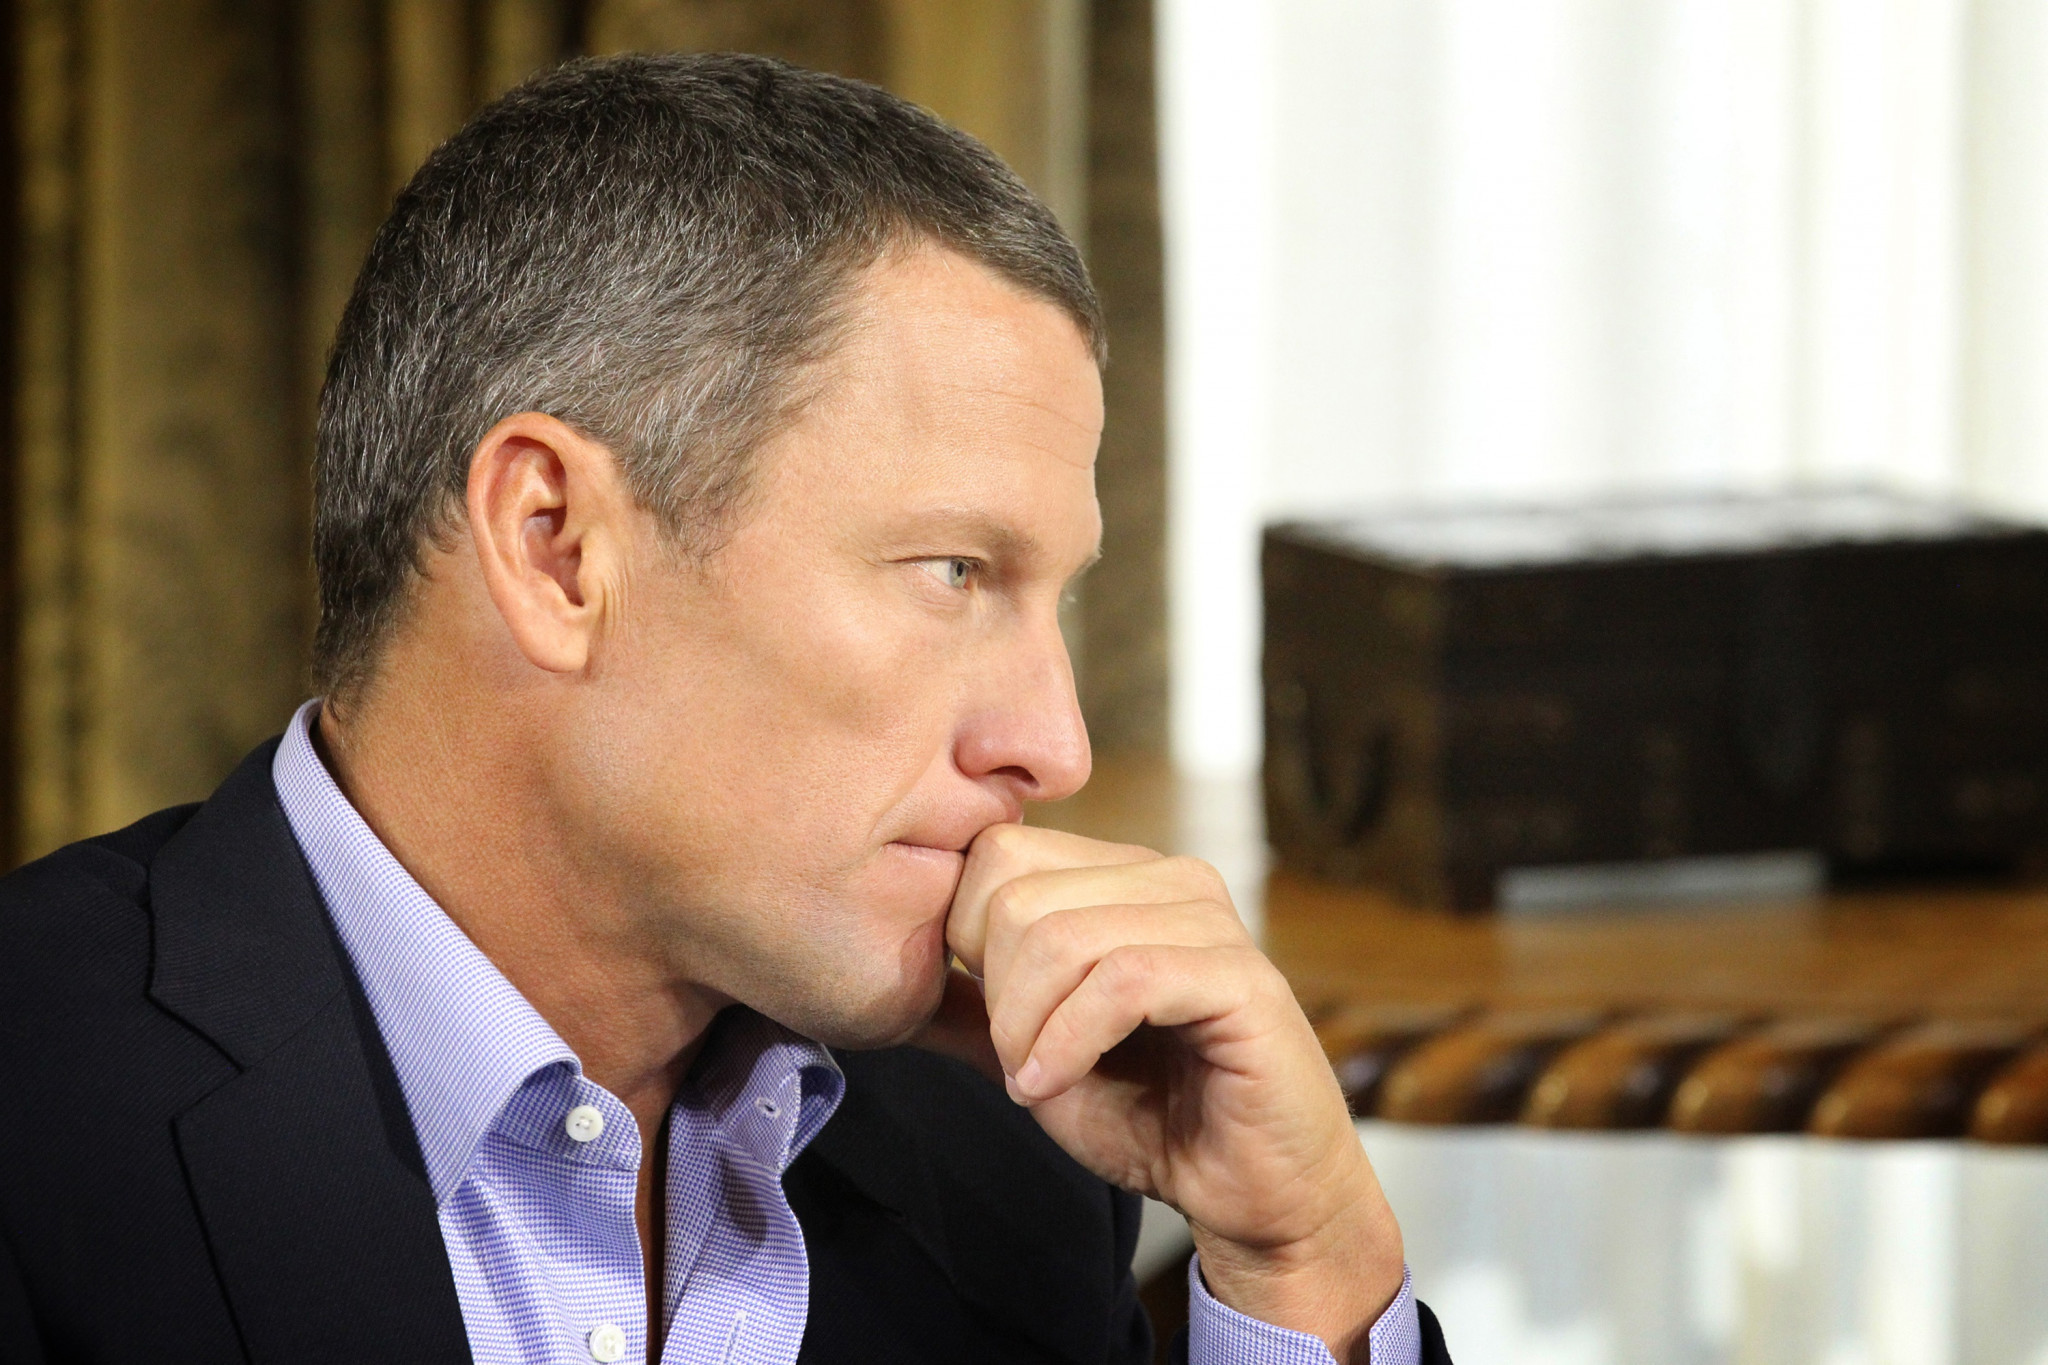 Disgraced cyclist Lance Armstrong admits doping may have caused testicular cancer